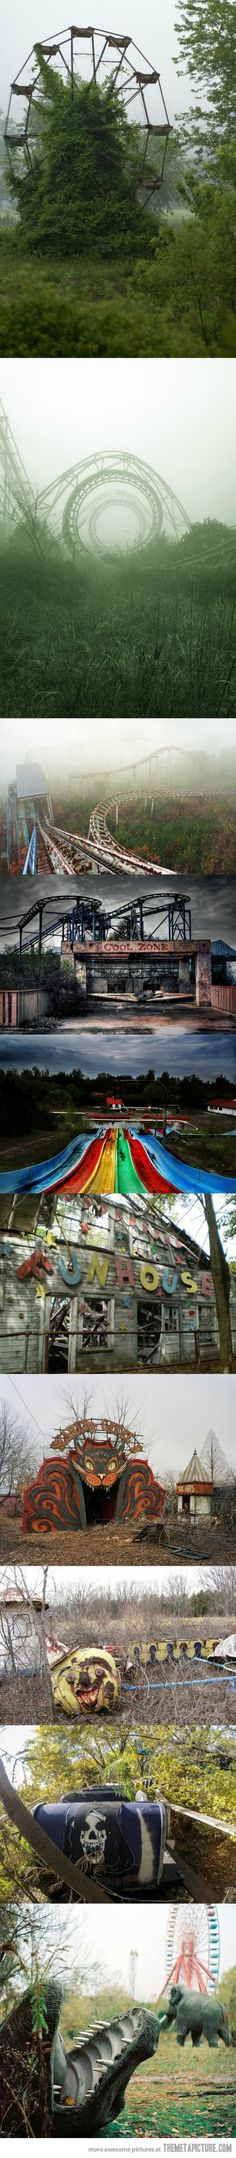 Abandoned amusement parks on http://seriouslyforreal.com/amazing-world/abandoned-amusement-parks11/